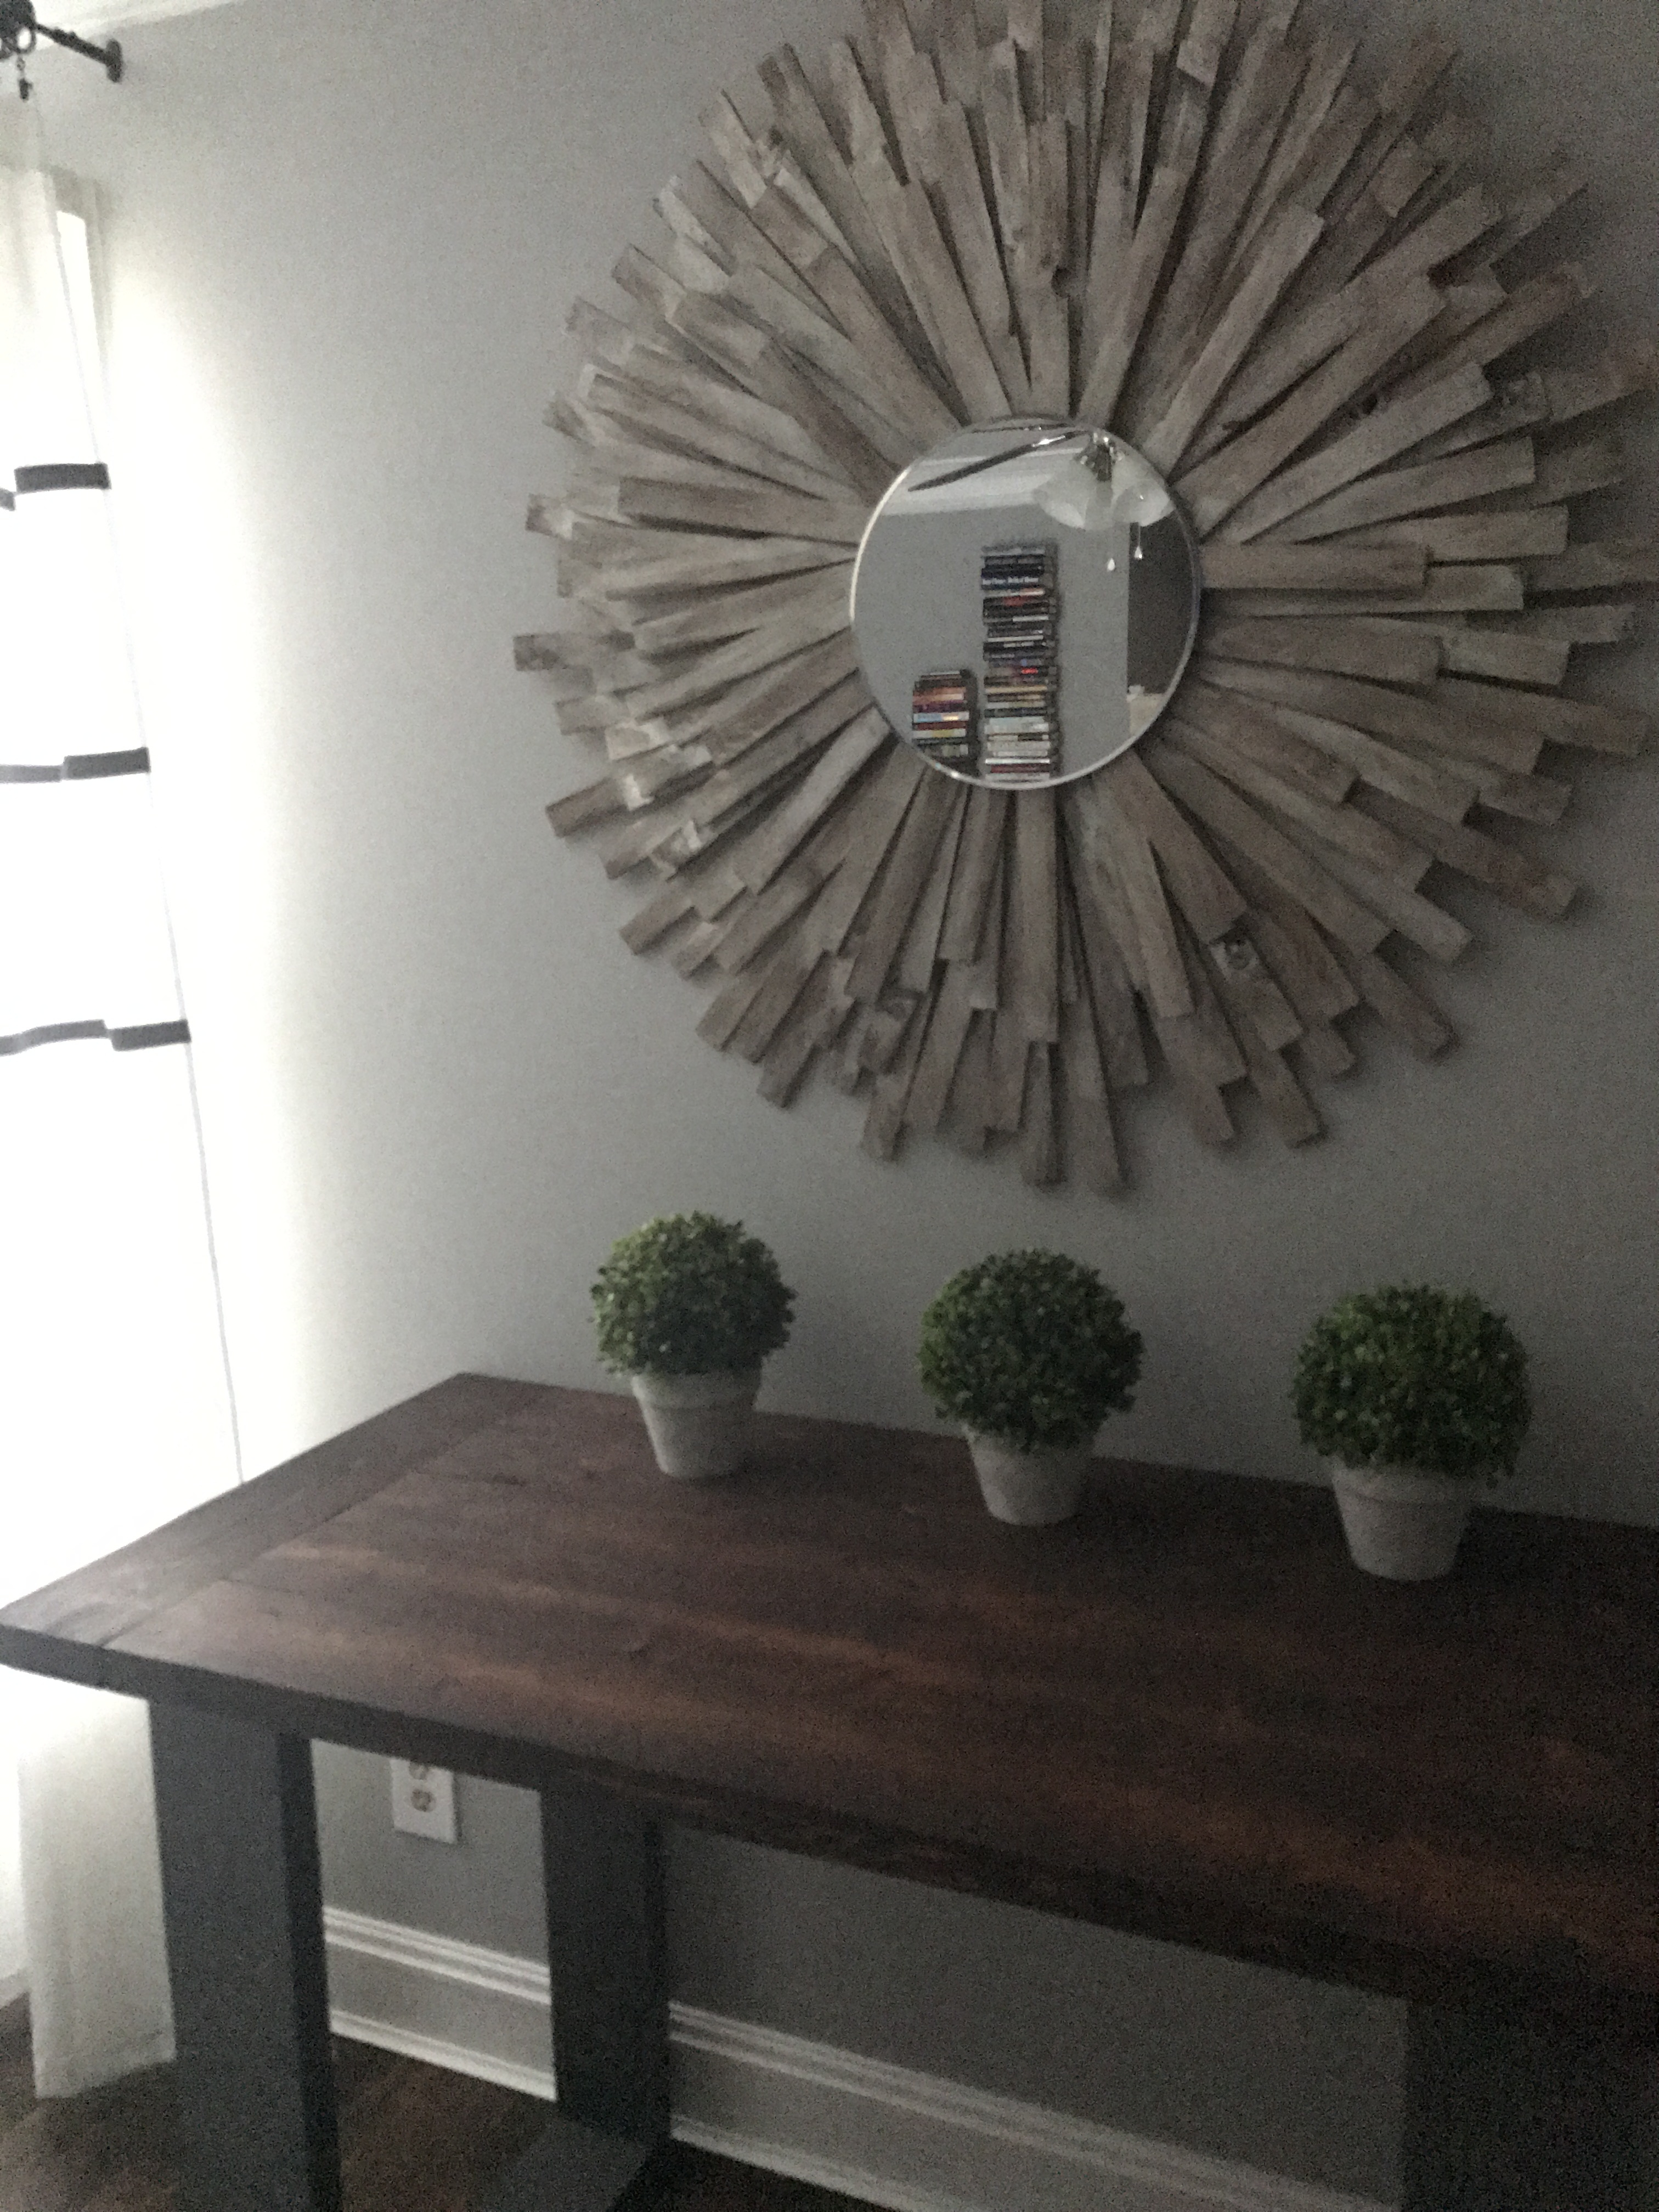 Diy Large Wall Mirror Intended For Latest Sunburst Mirror Diy Cheap And Creative Wall Art With Wood Shims (View 3 of 20)